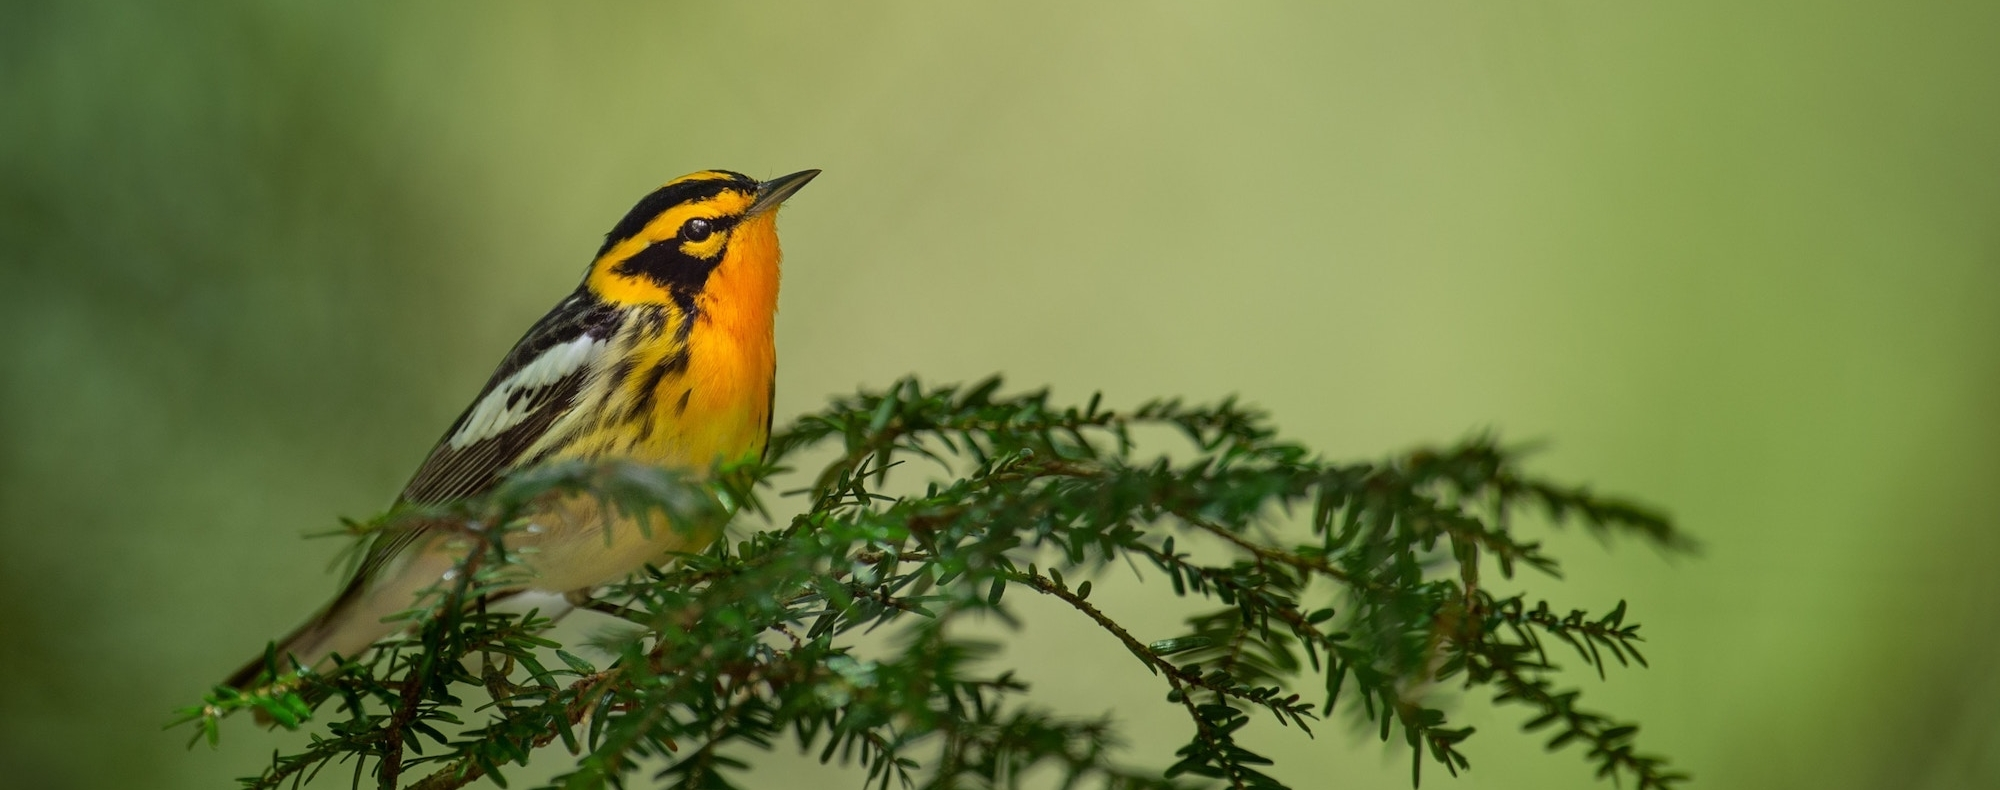 Warbler on a branch